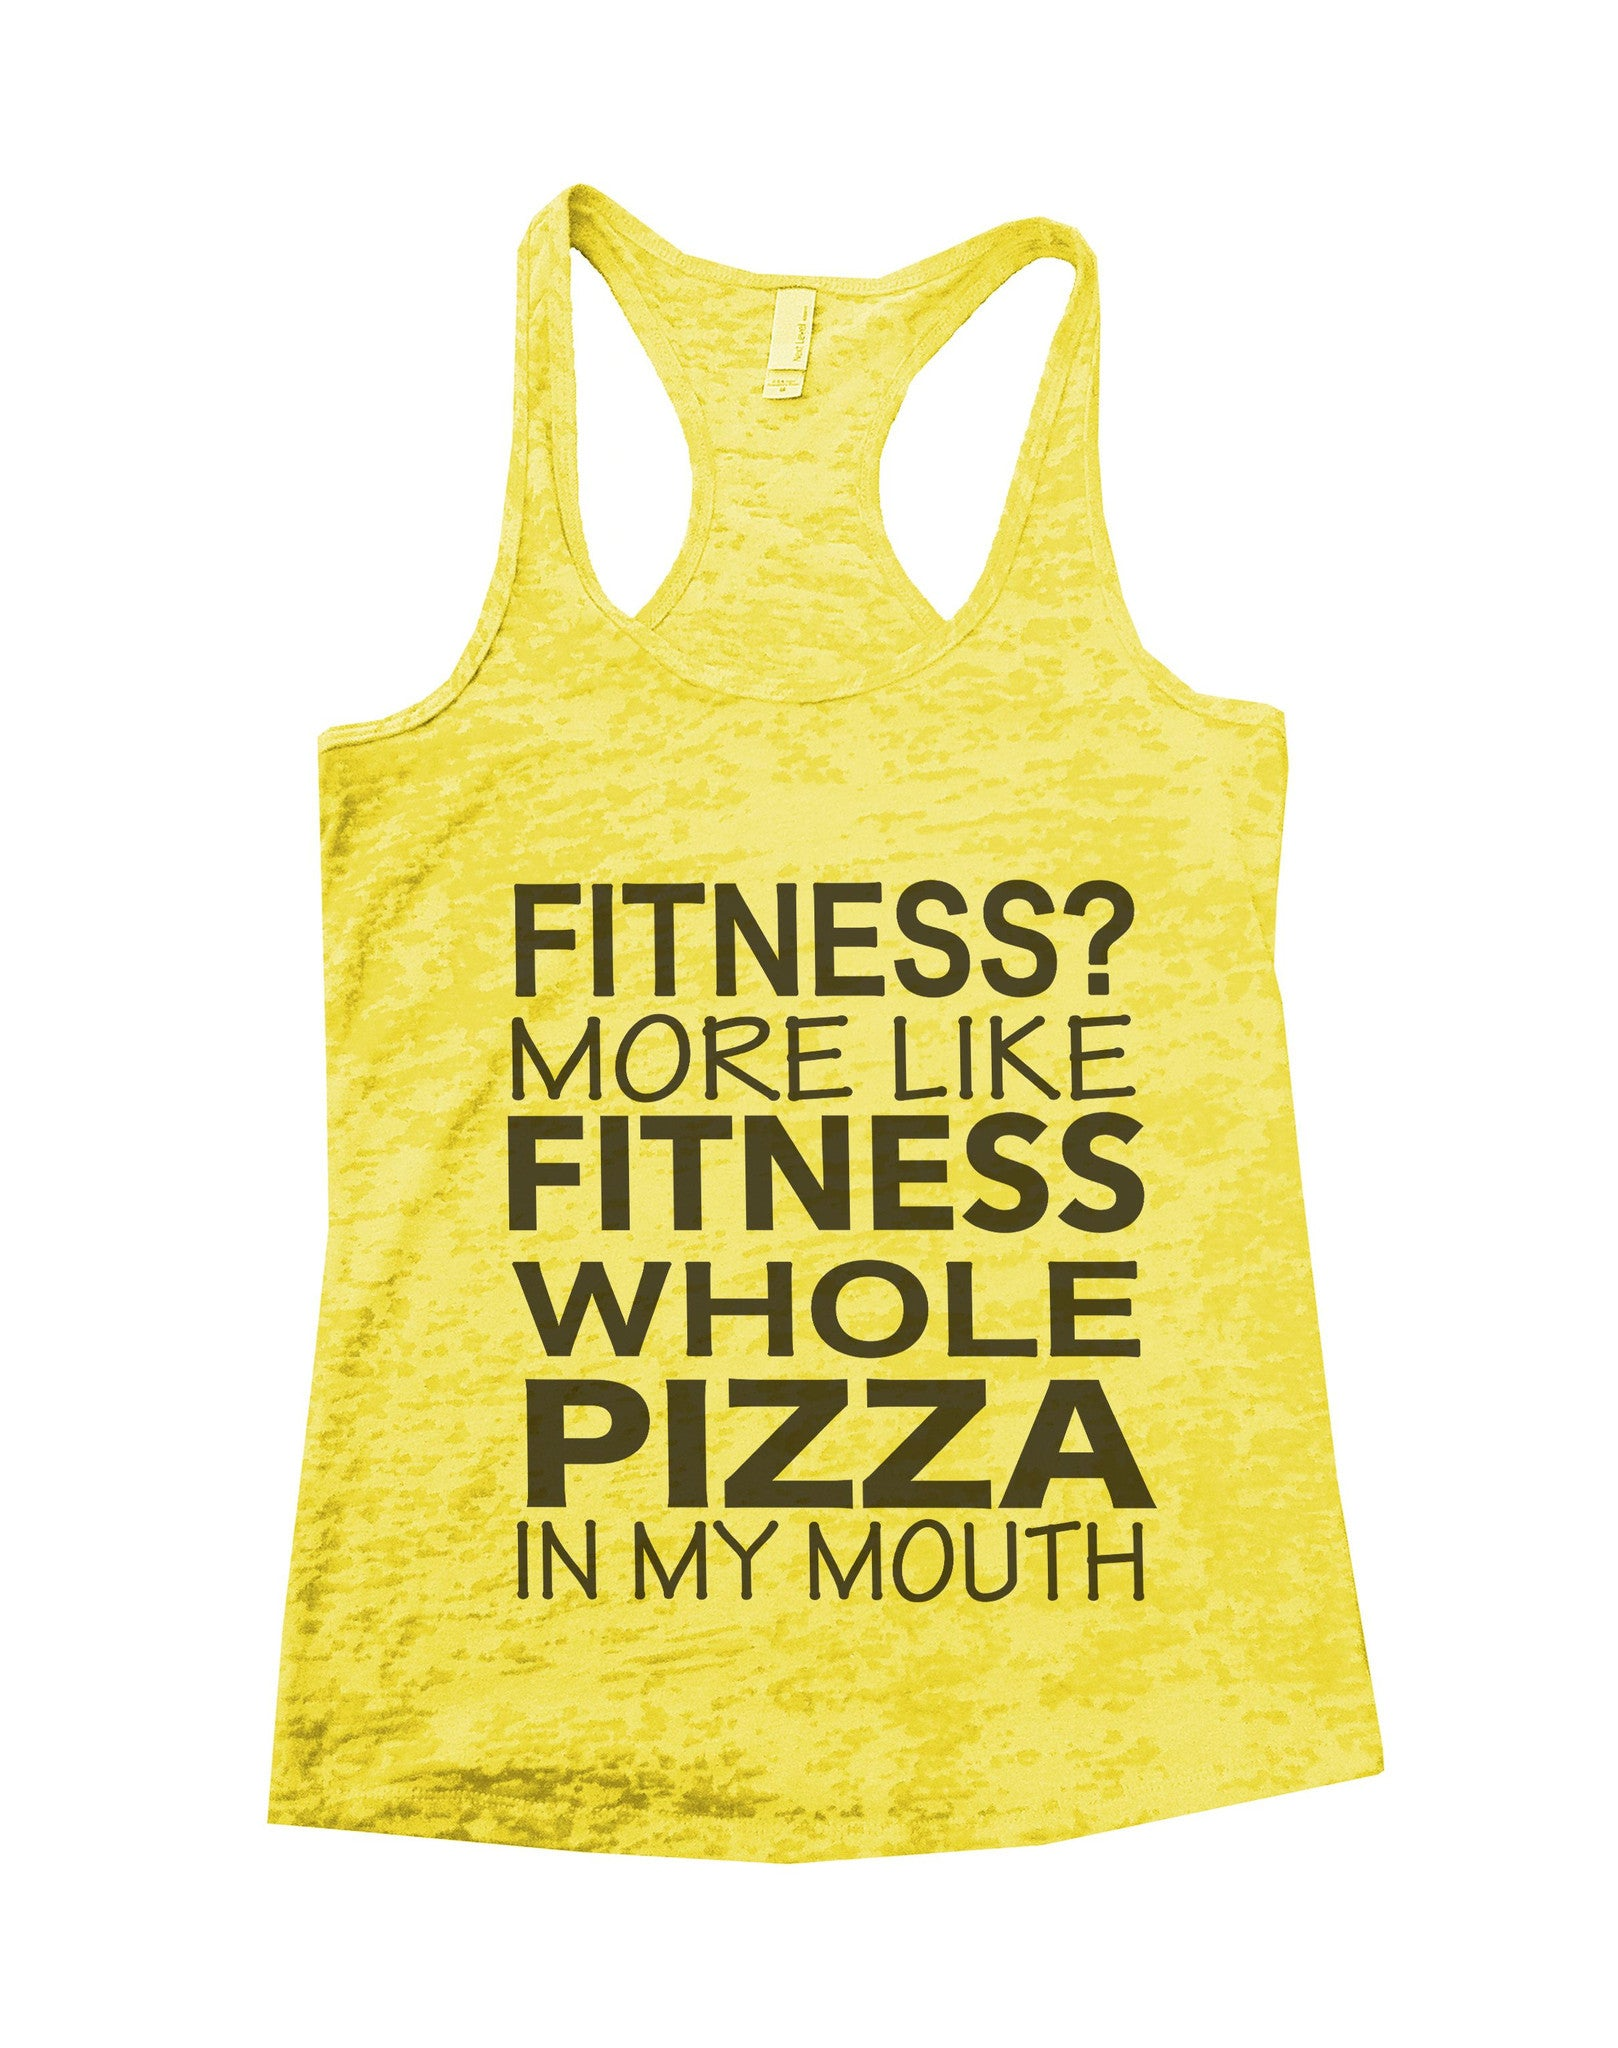 Fitness? More Like Fitness Whole Pizza In My Mouth Burnout Tank Top By BurnoutTankTops.com - B28 - Funny Shirts Tank Tops Burnouts and Triblends  - 2